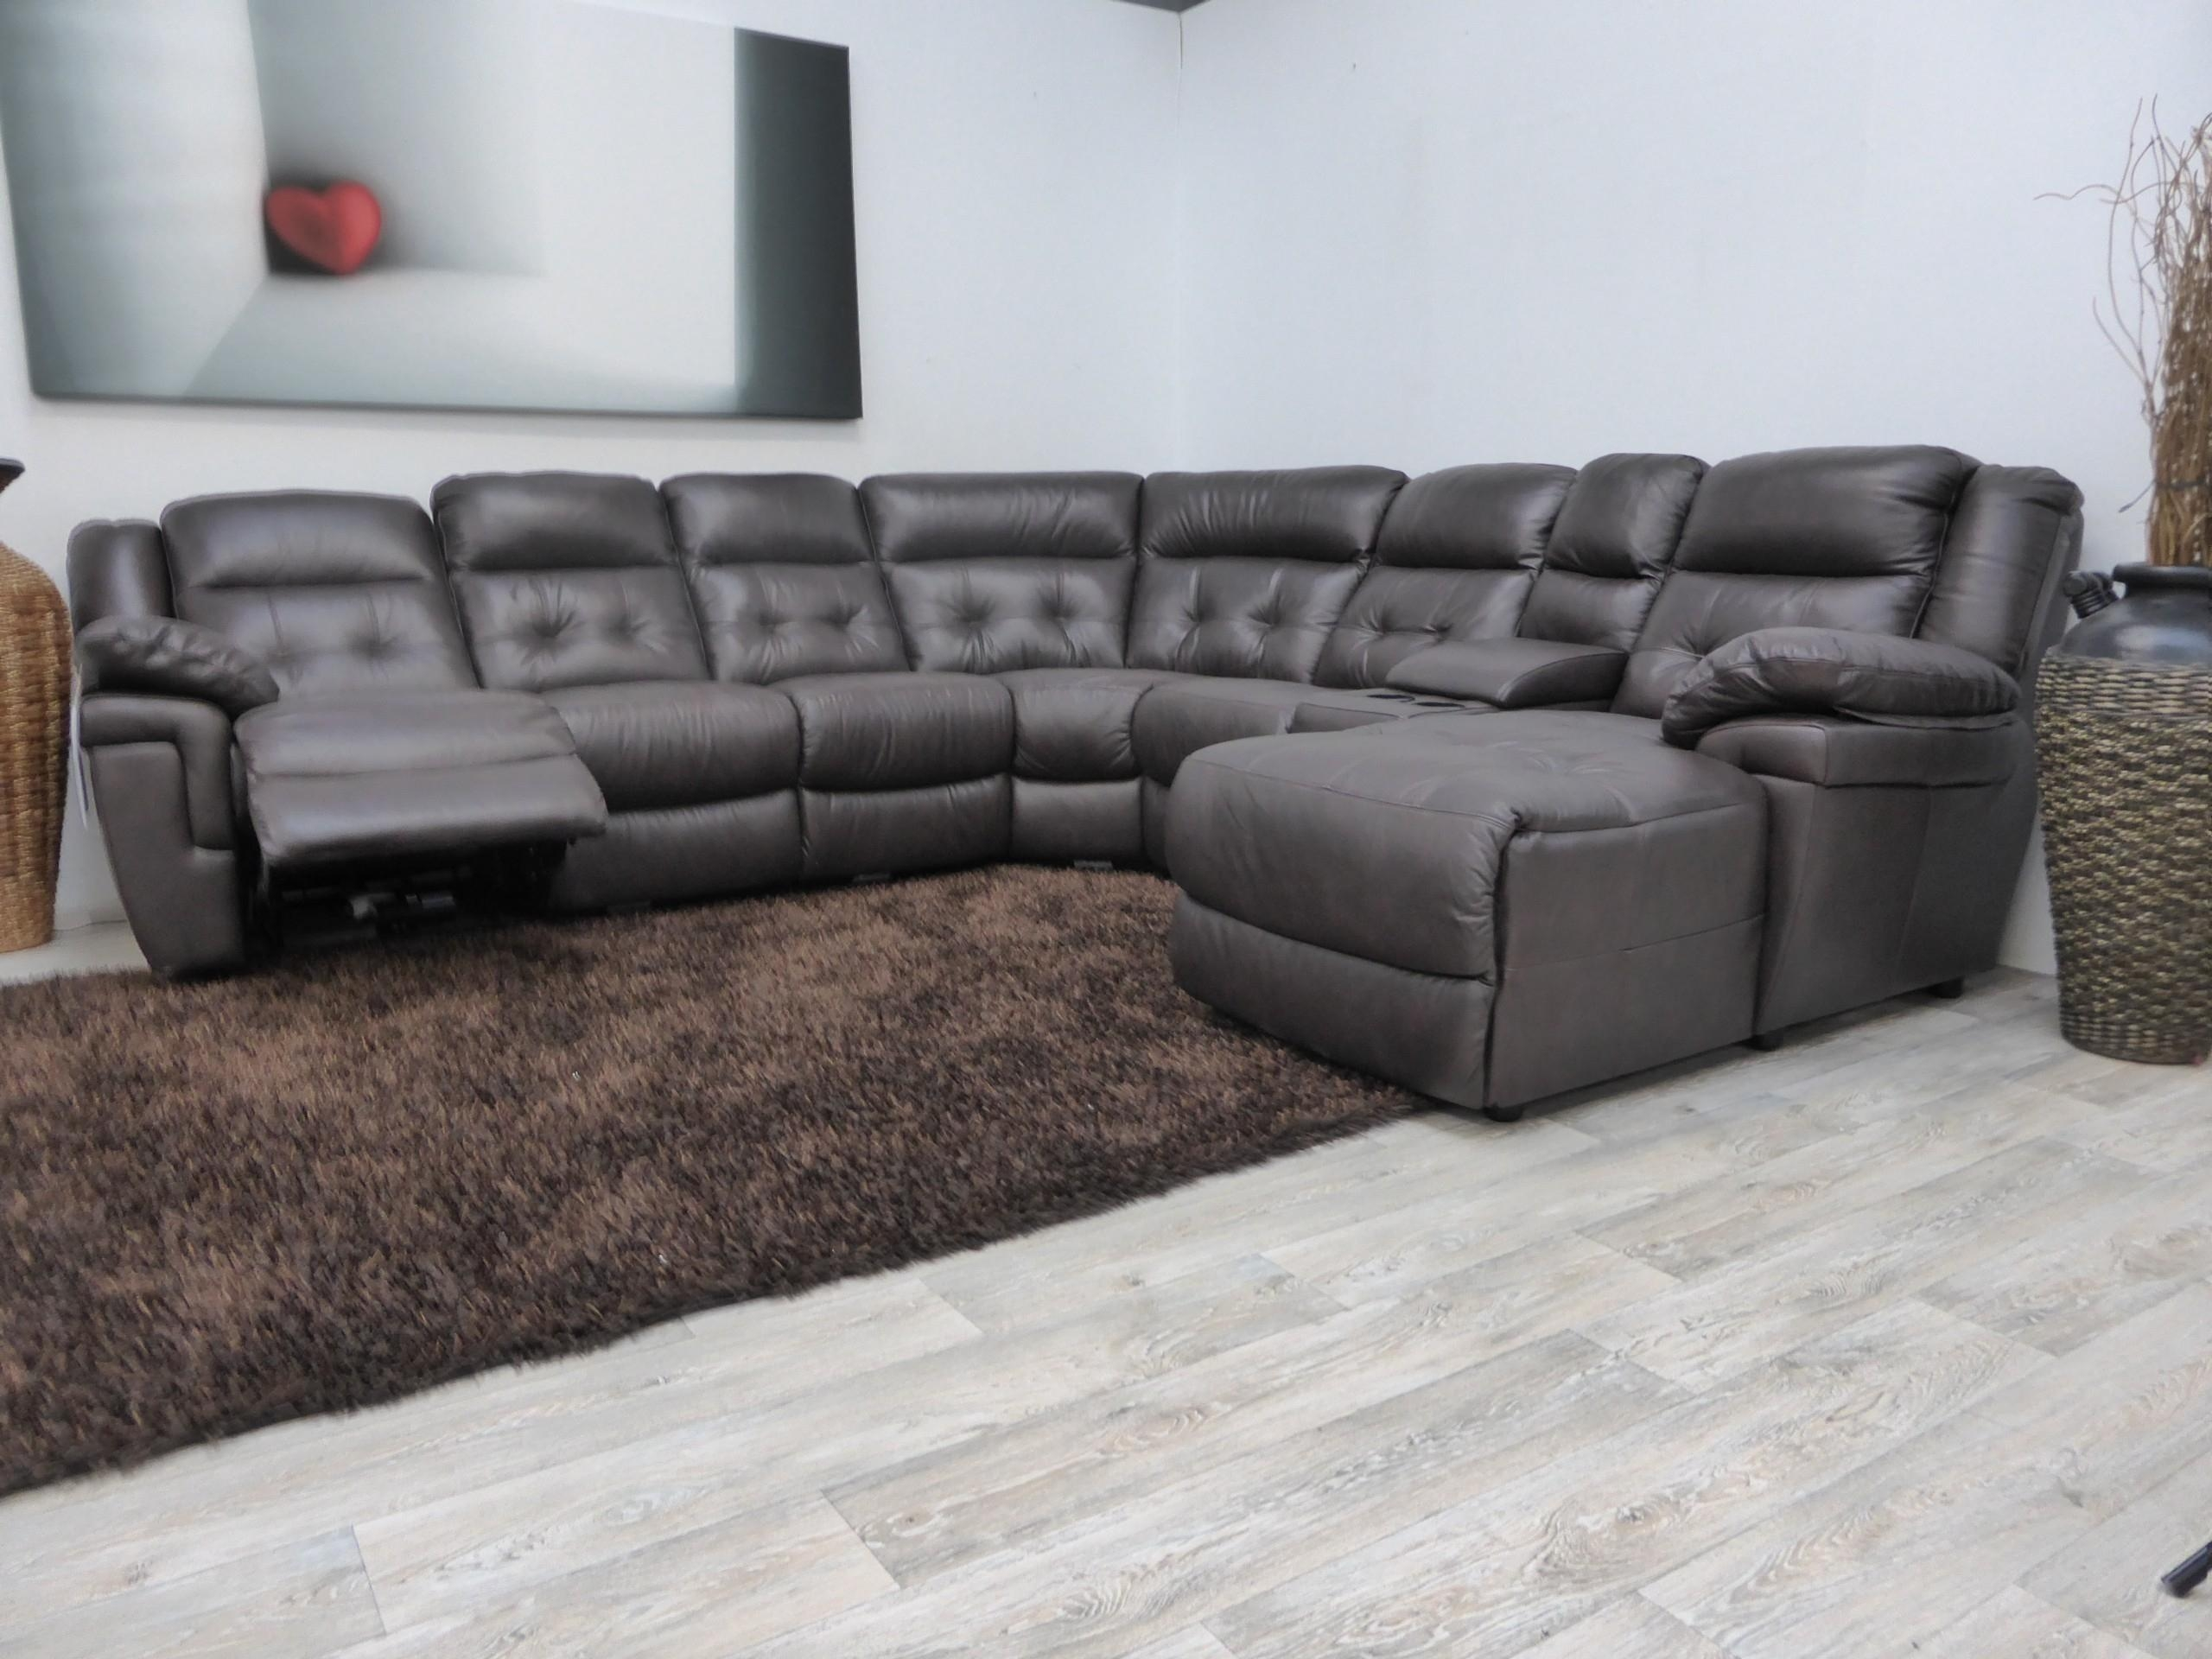 Sofas Center : Lazy Boy Sectional Sofas Formidable Images Ideas With Regard To Lazyboy Sectional (Image 19 of 20)